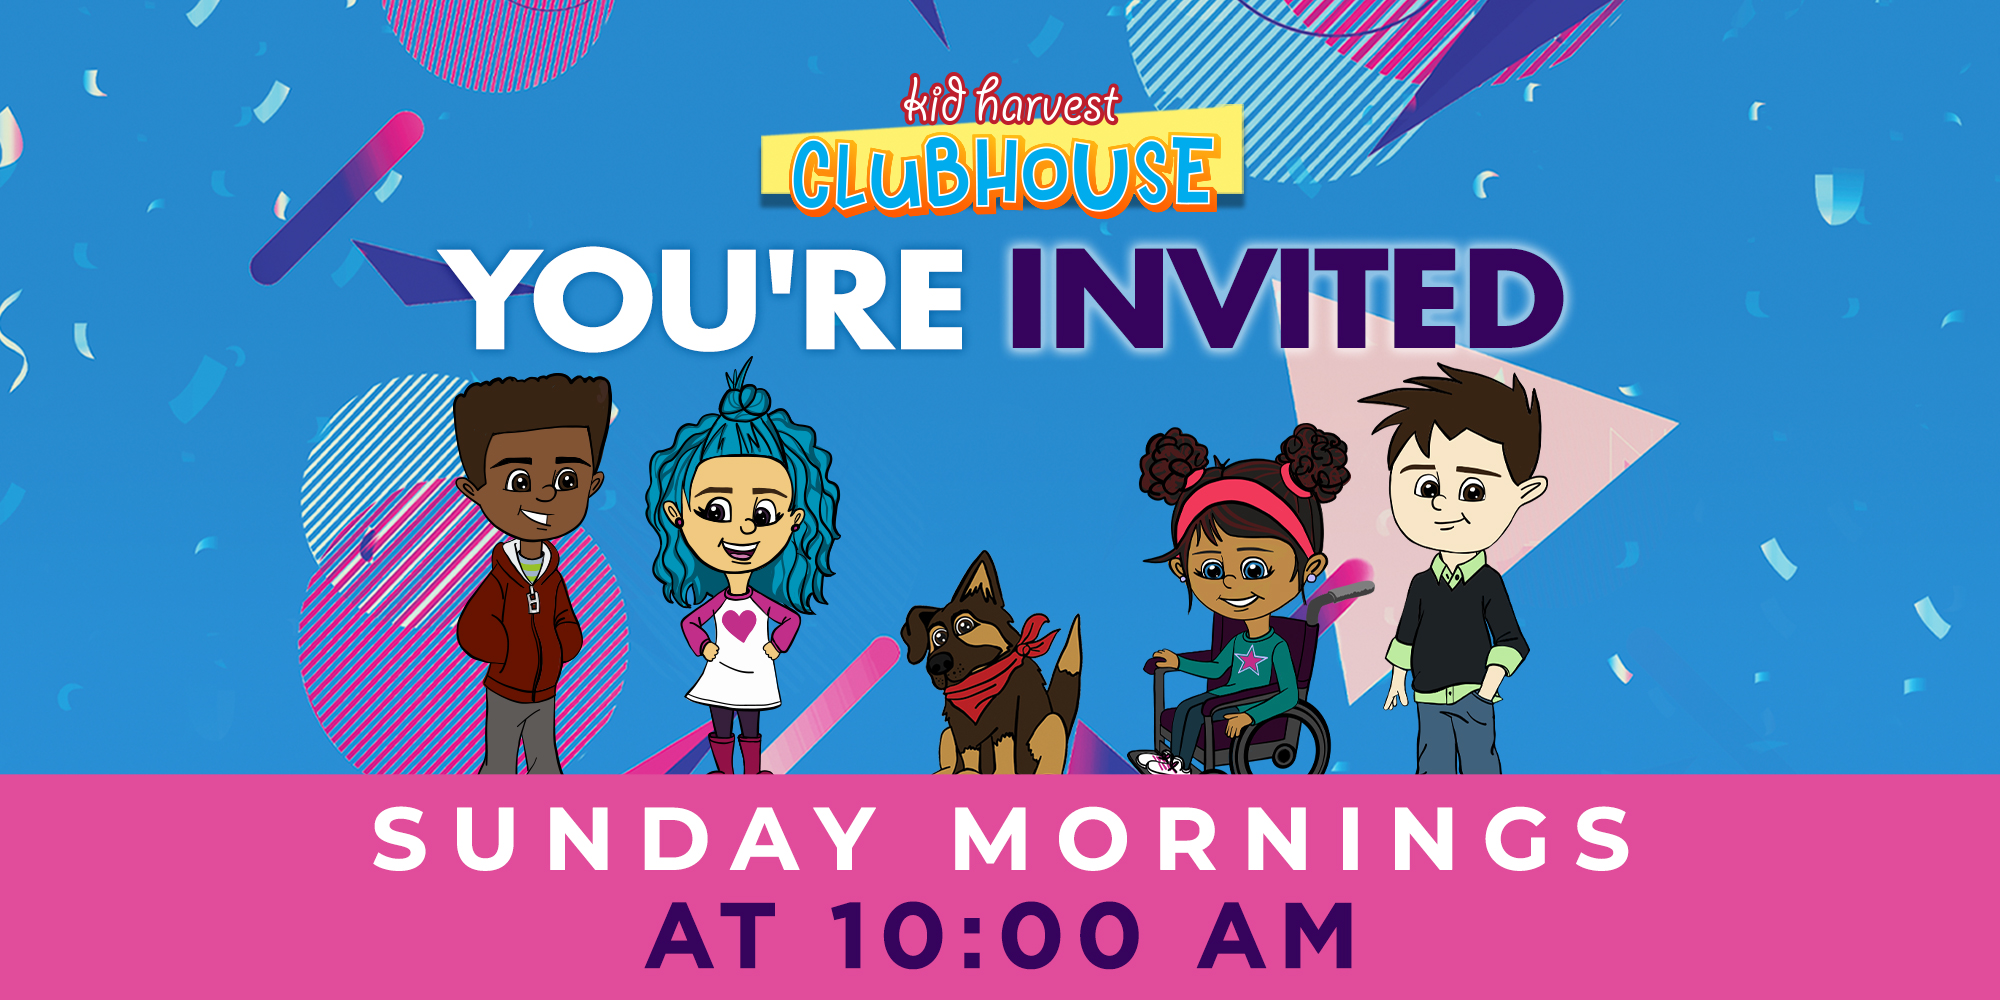 Kid Harvest Clubhouse You're Invited Sunday Mornings at 10:00 AM